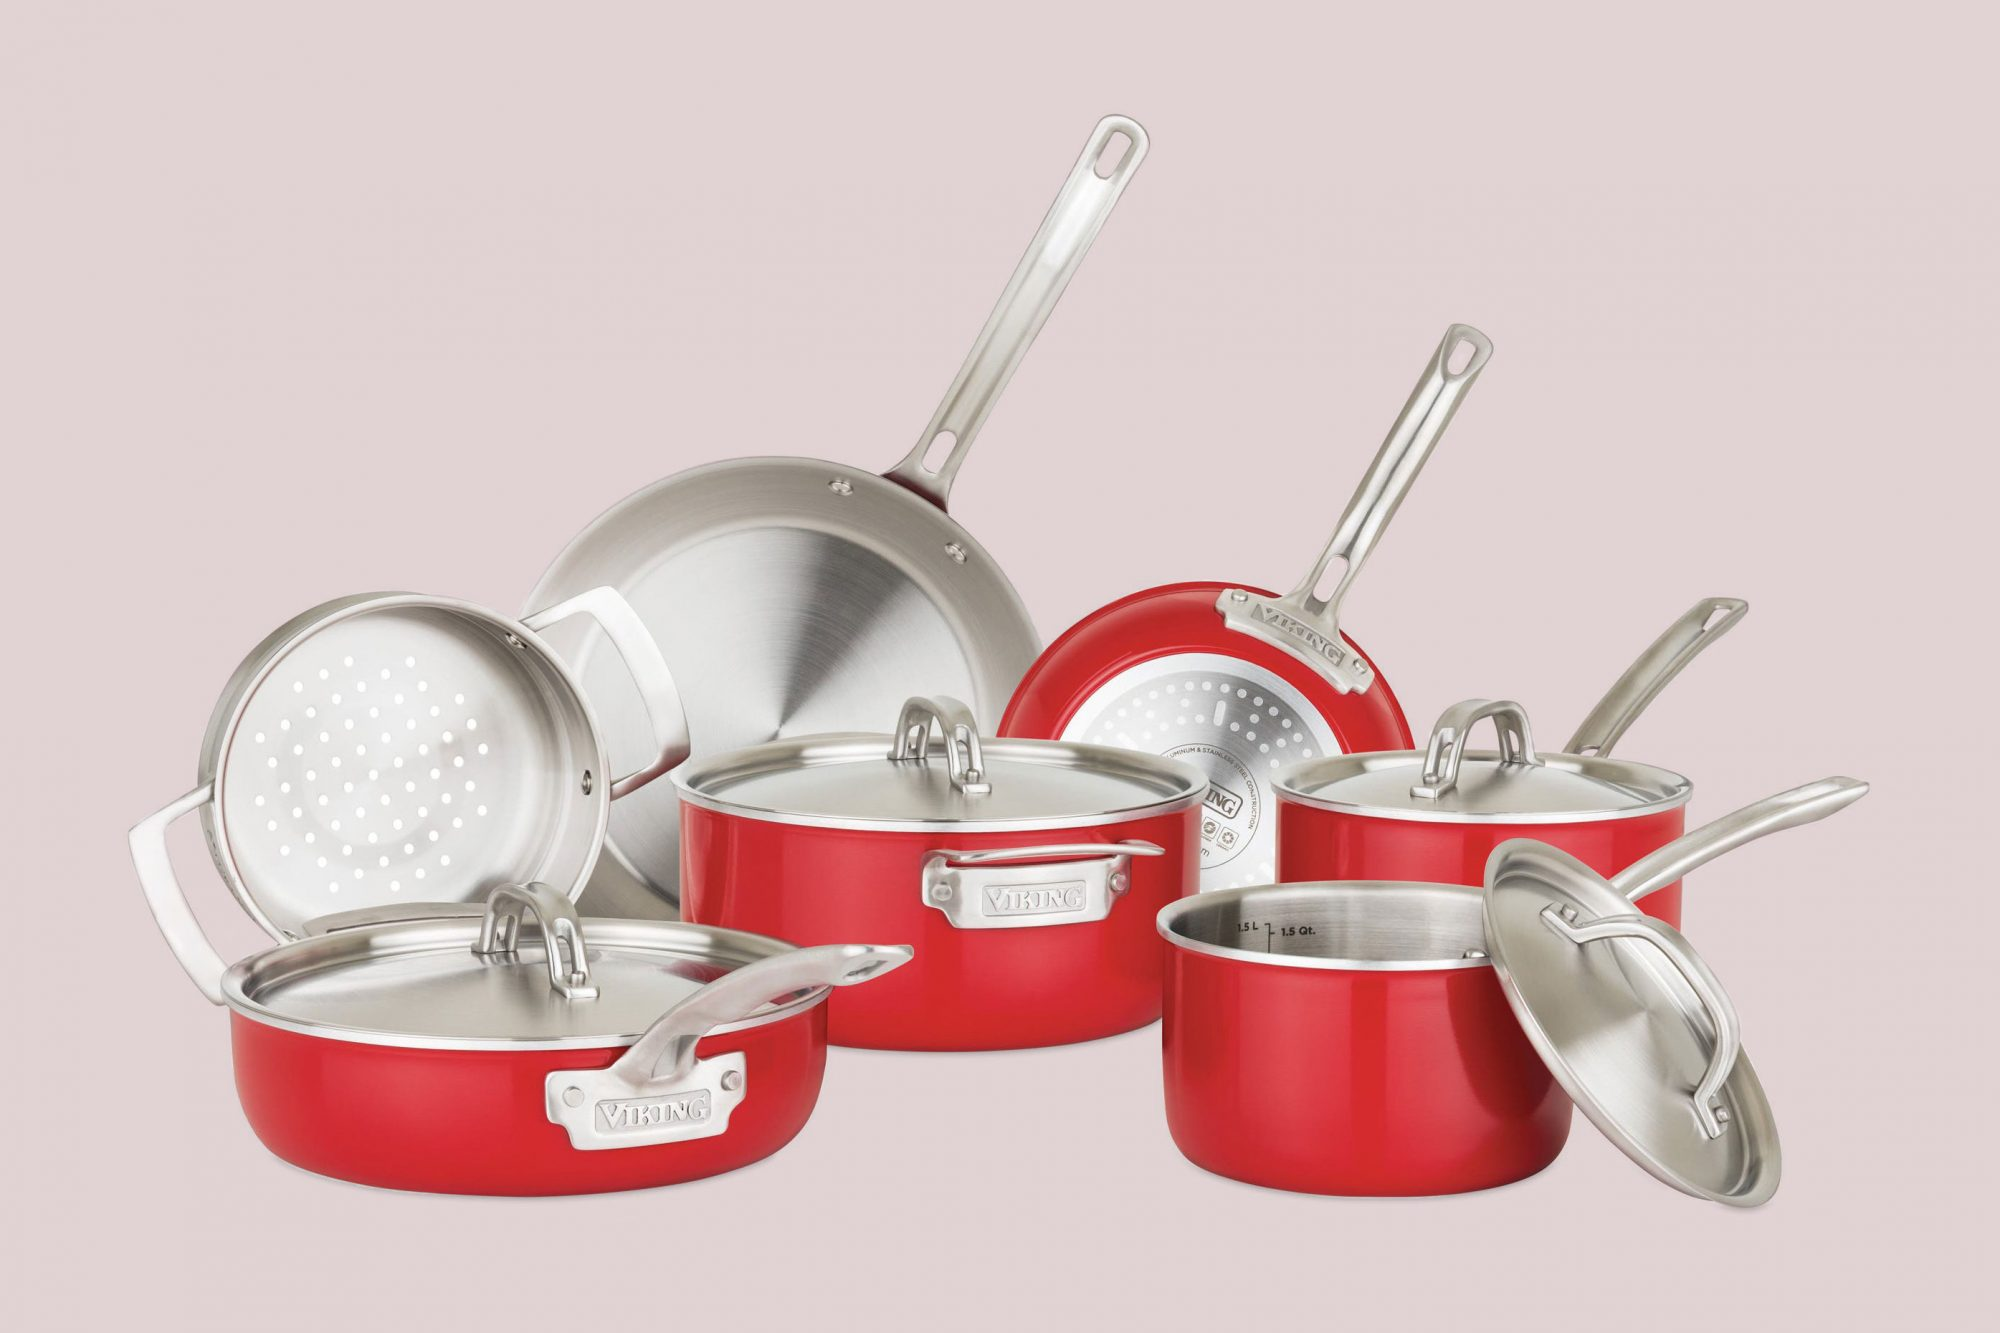 11 piece red viking coookware set